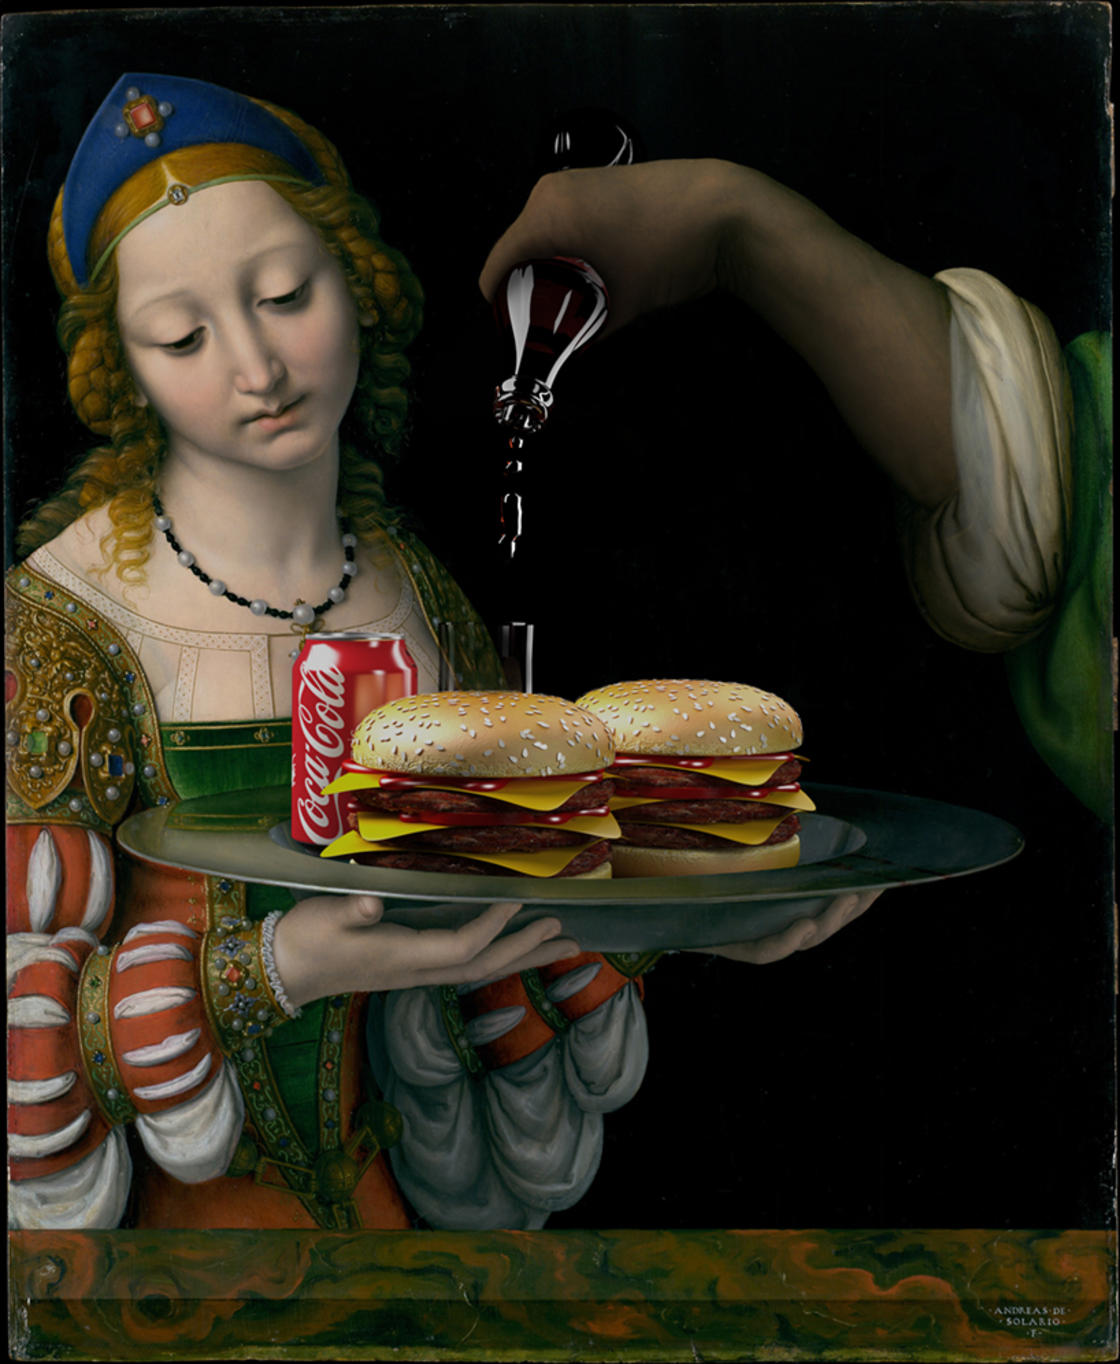 This guy offers piles of burgers to the masterpieces of painting